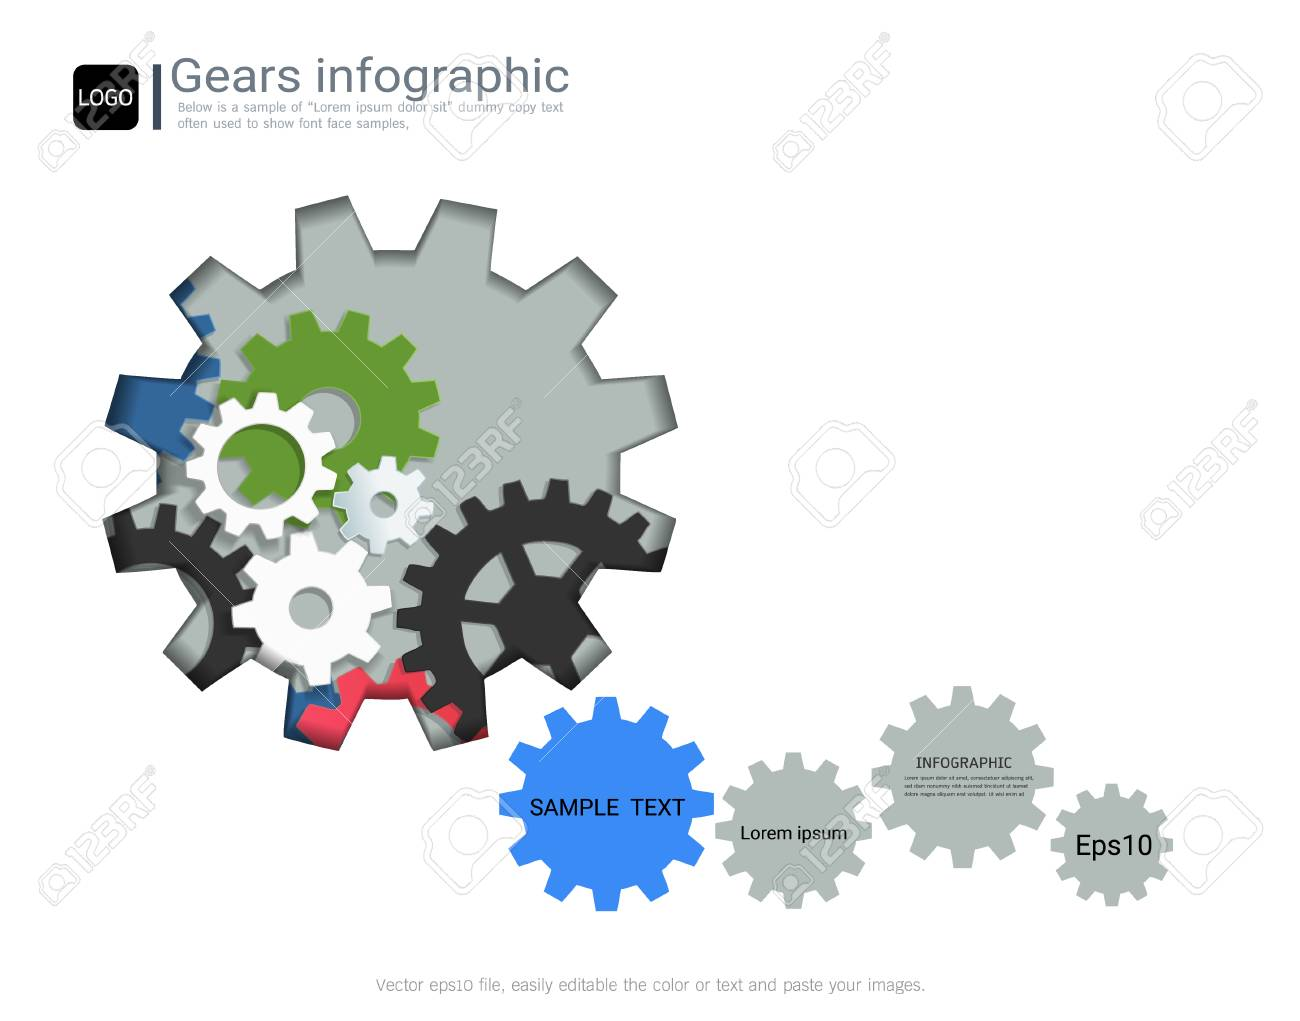 gears infographic template for business presentation strategic